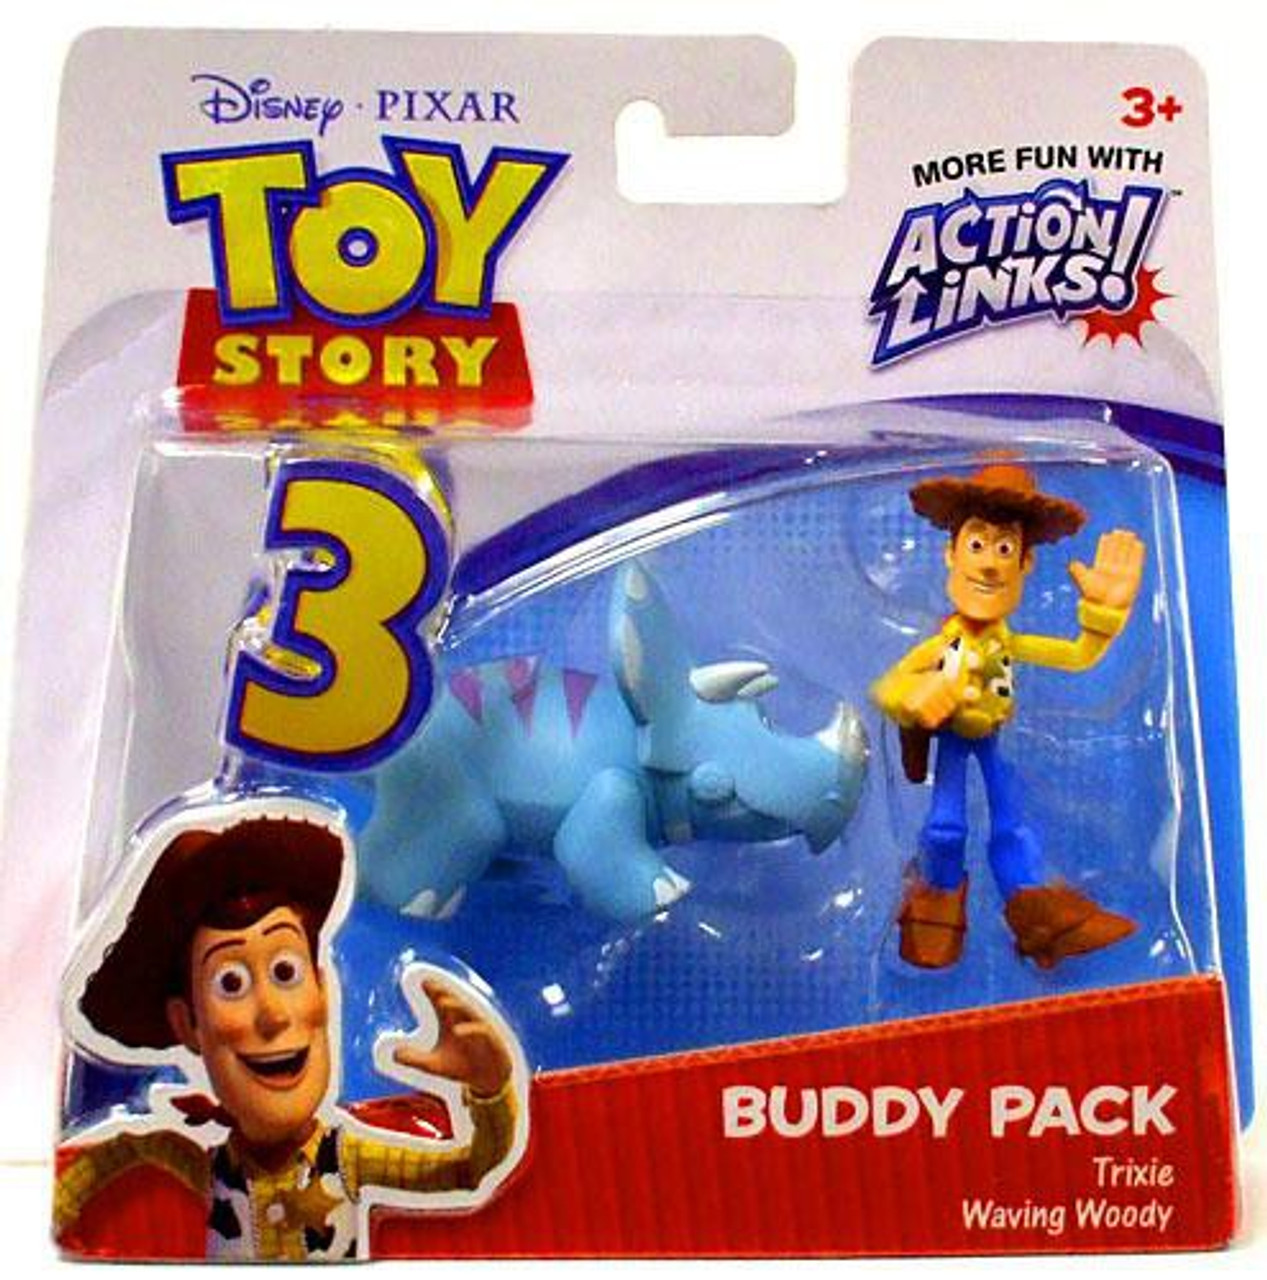 Toy Story 3 Action Links Buddy Pack Trixie   Waving Woody Mini Figure 2-Pack 829bcc45d61